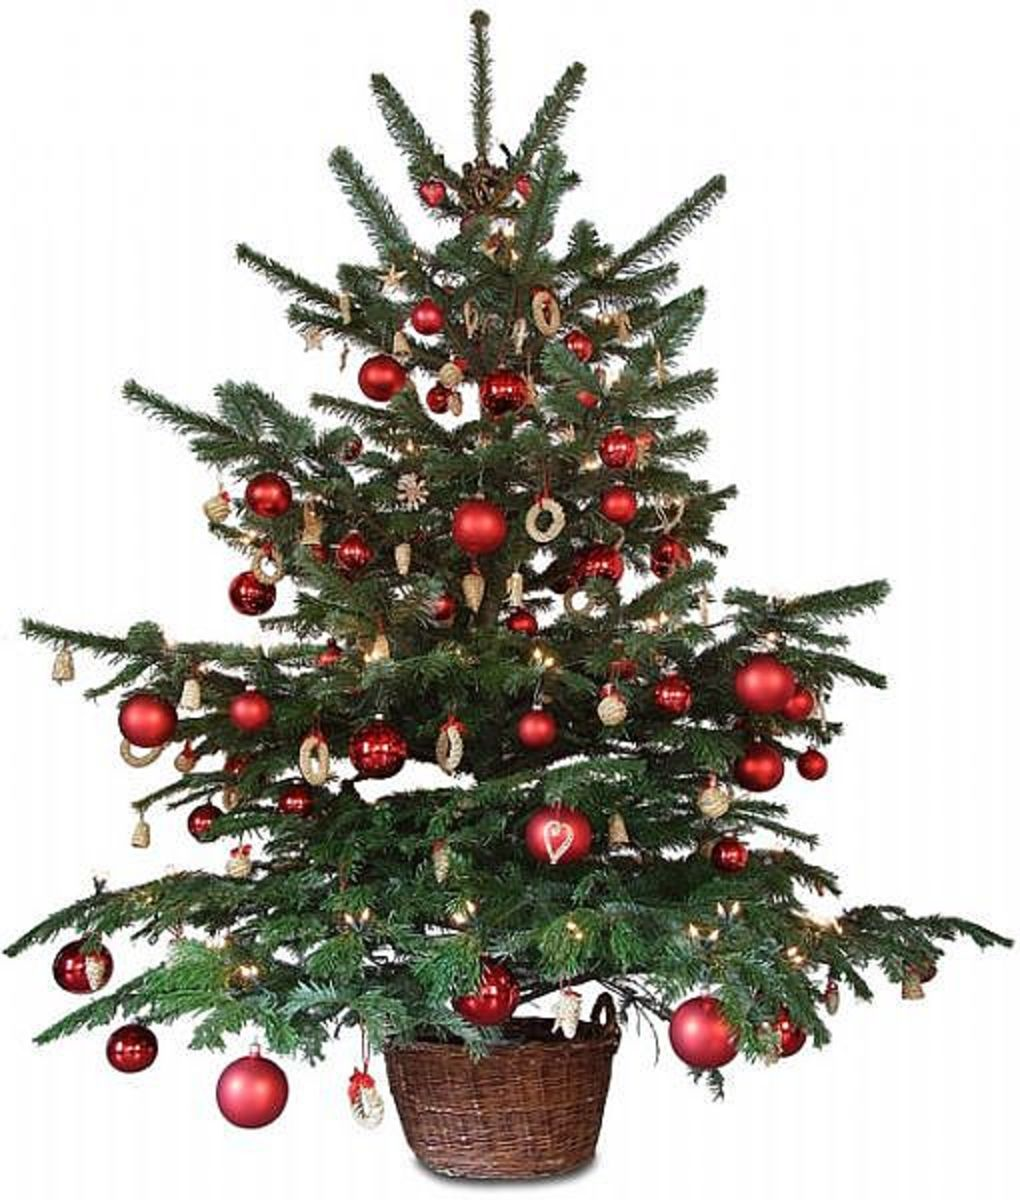 Deck The Halls From Porch To Treetop - Christmas Lights, Christmas Tree Toppers & Christmas Angels